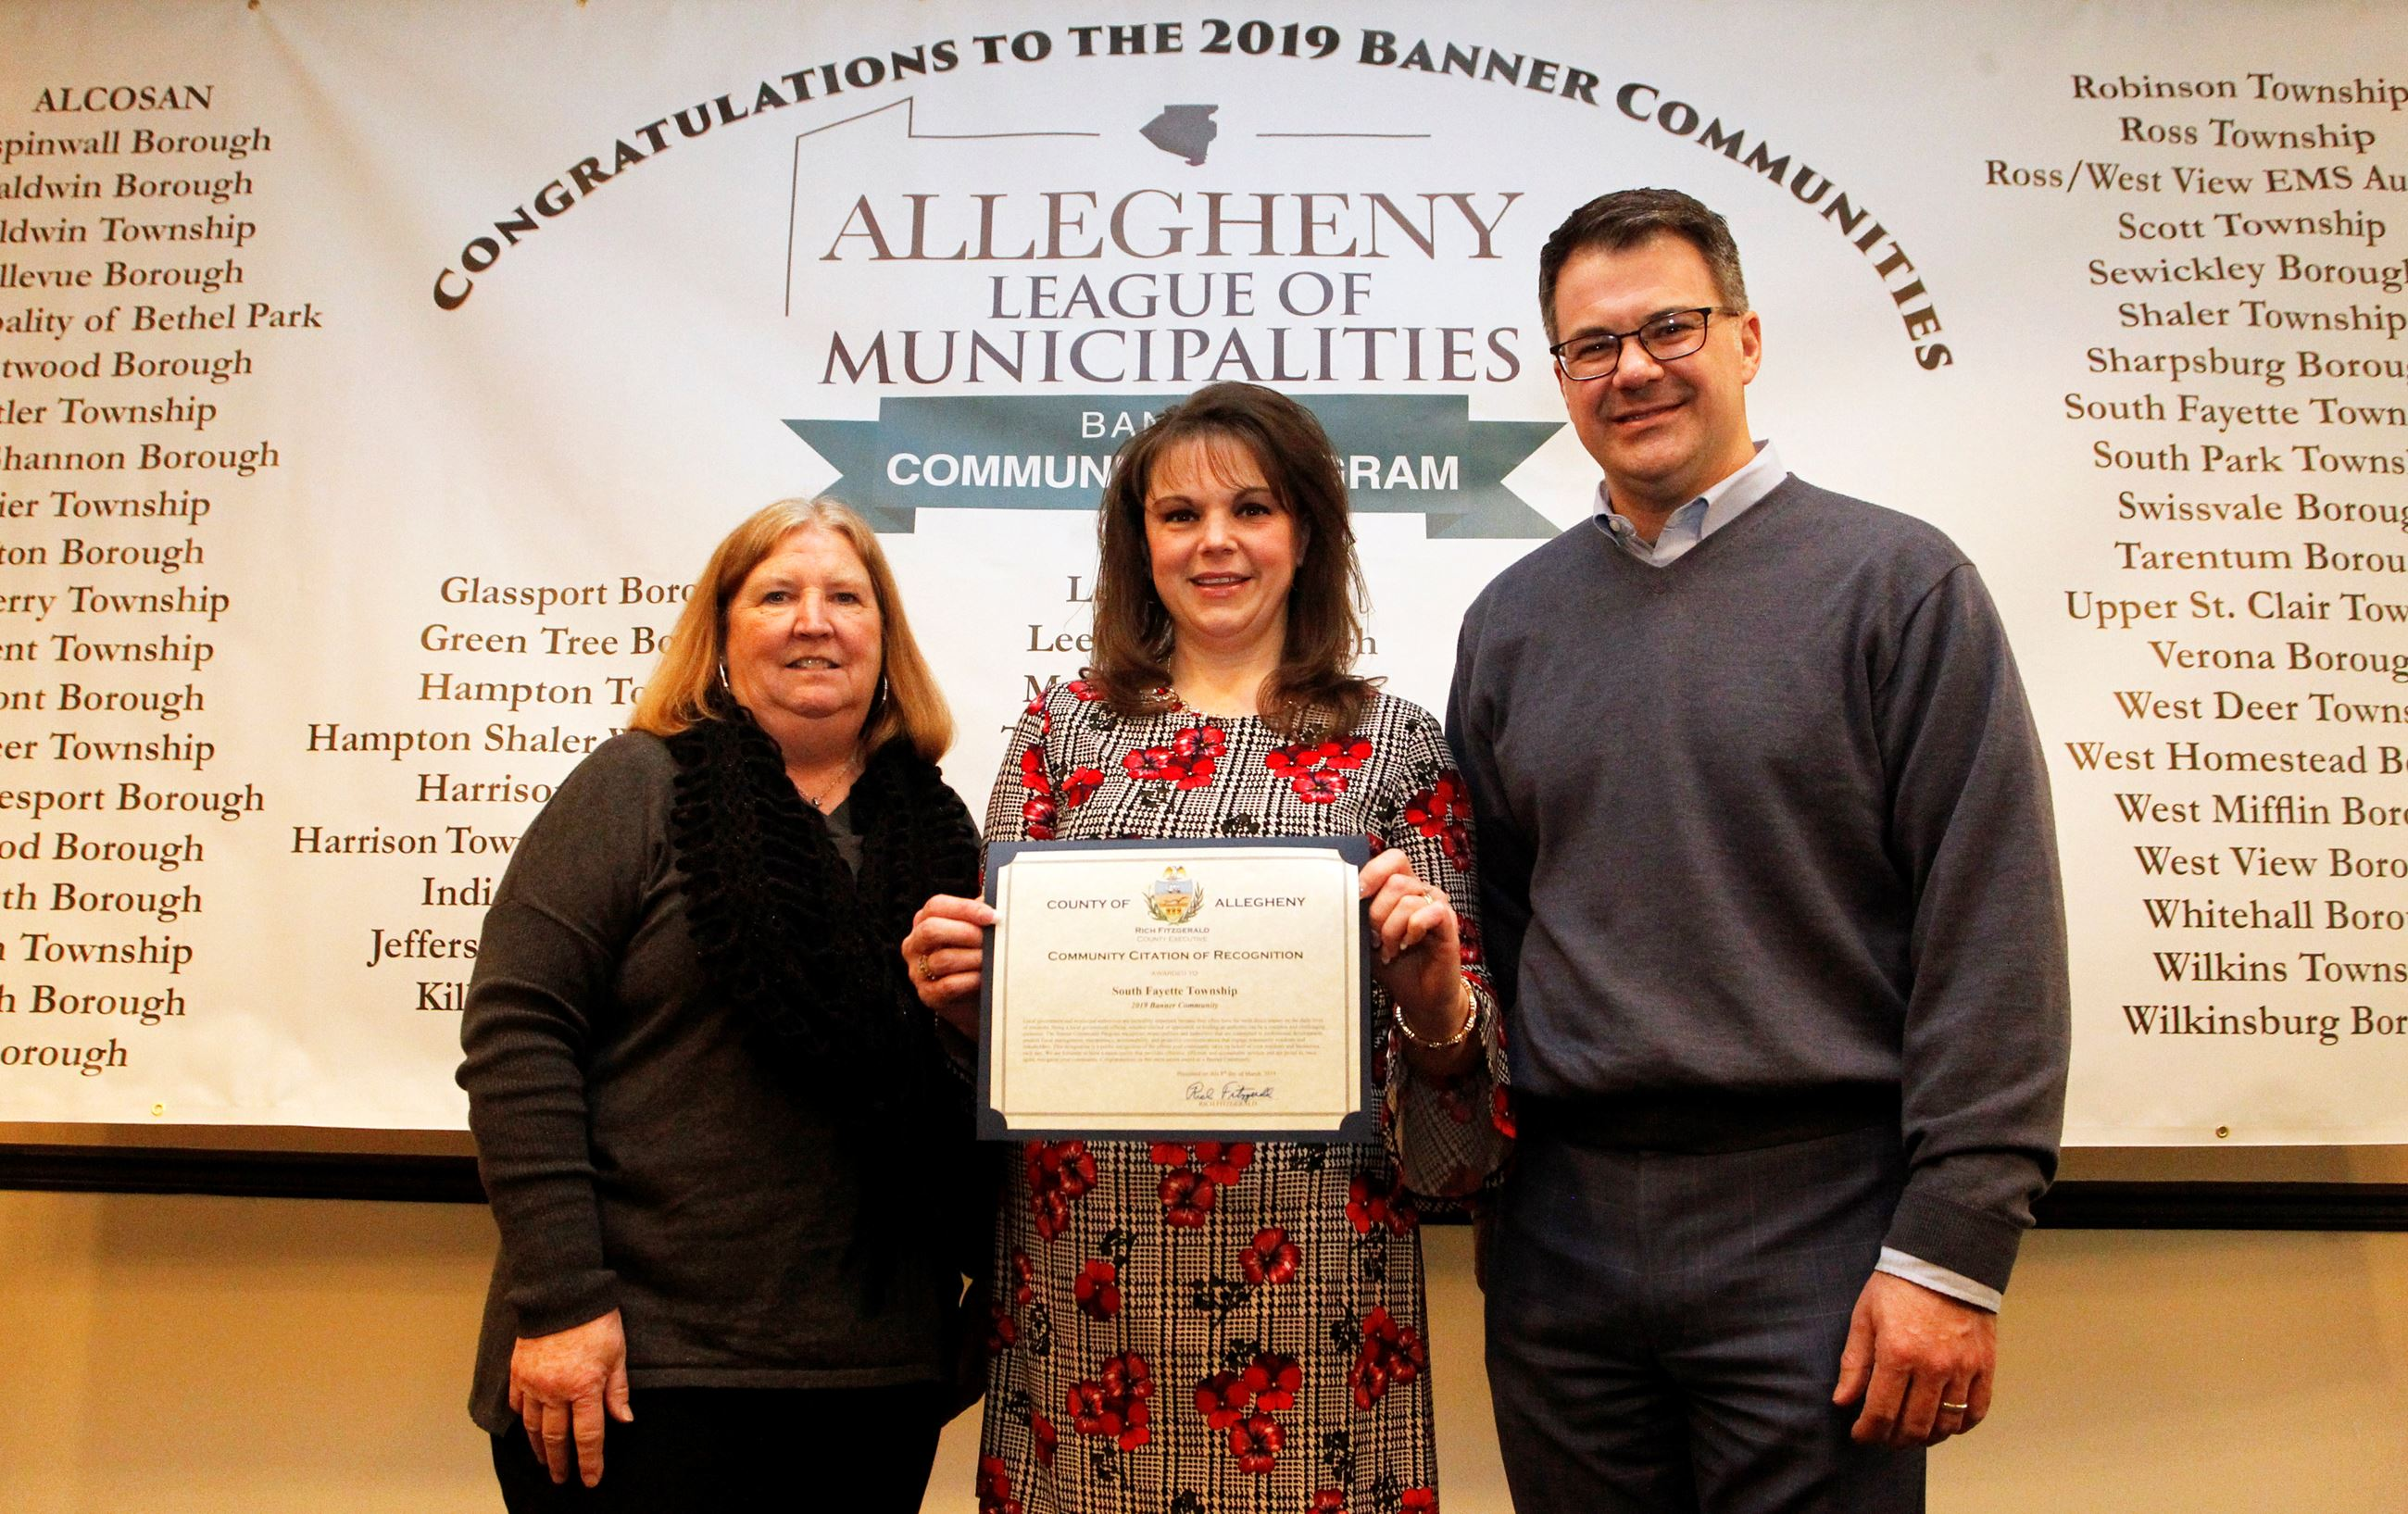 Three township representatives accept the 2019 Banner Community award